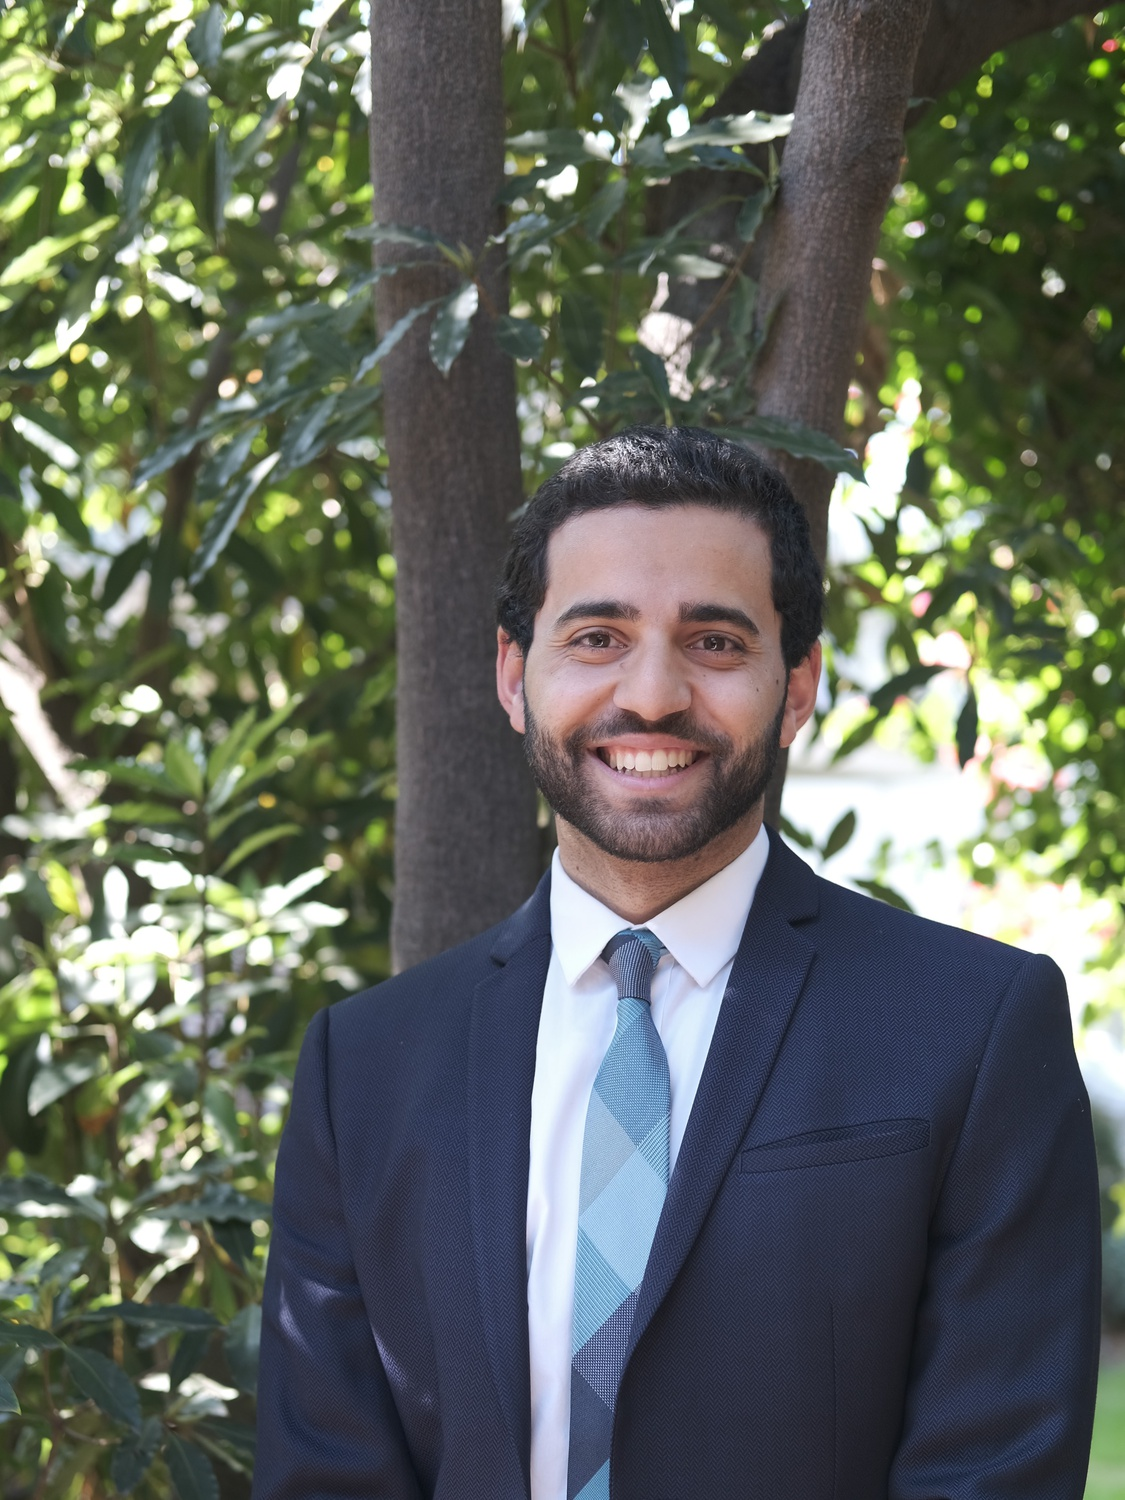 The Harvard Law Review elected second year law student Hassaan Shahawy '16 as the journal's president earlier this month, making him the first Muslim to hold the role in its 135-year history.